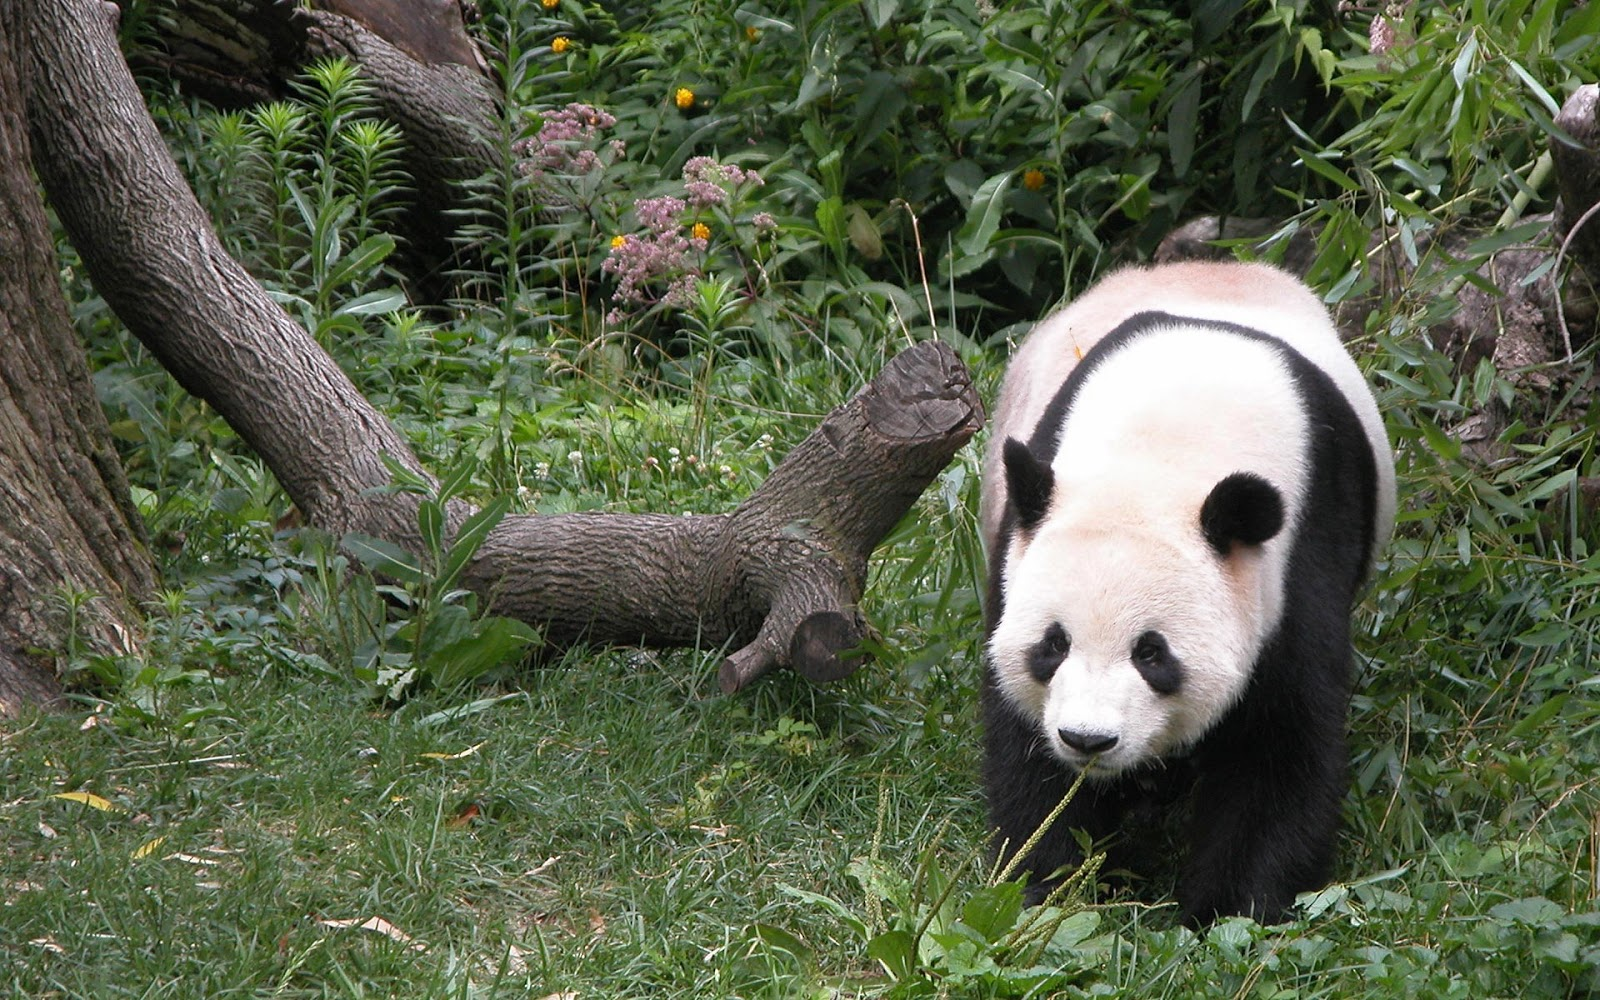 panda pictures hd wallpapers - photo #37